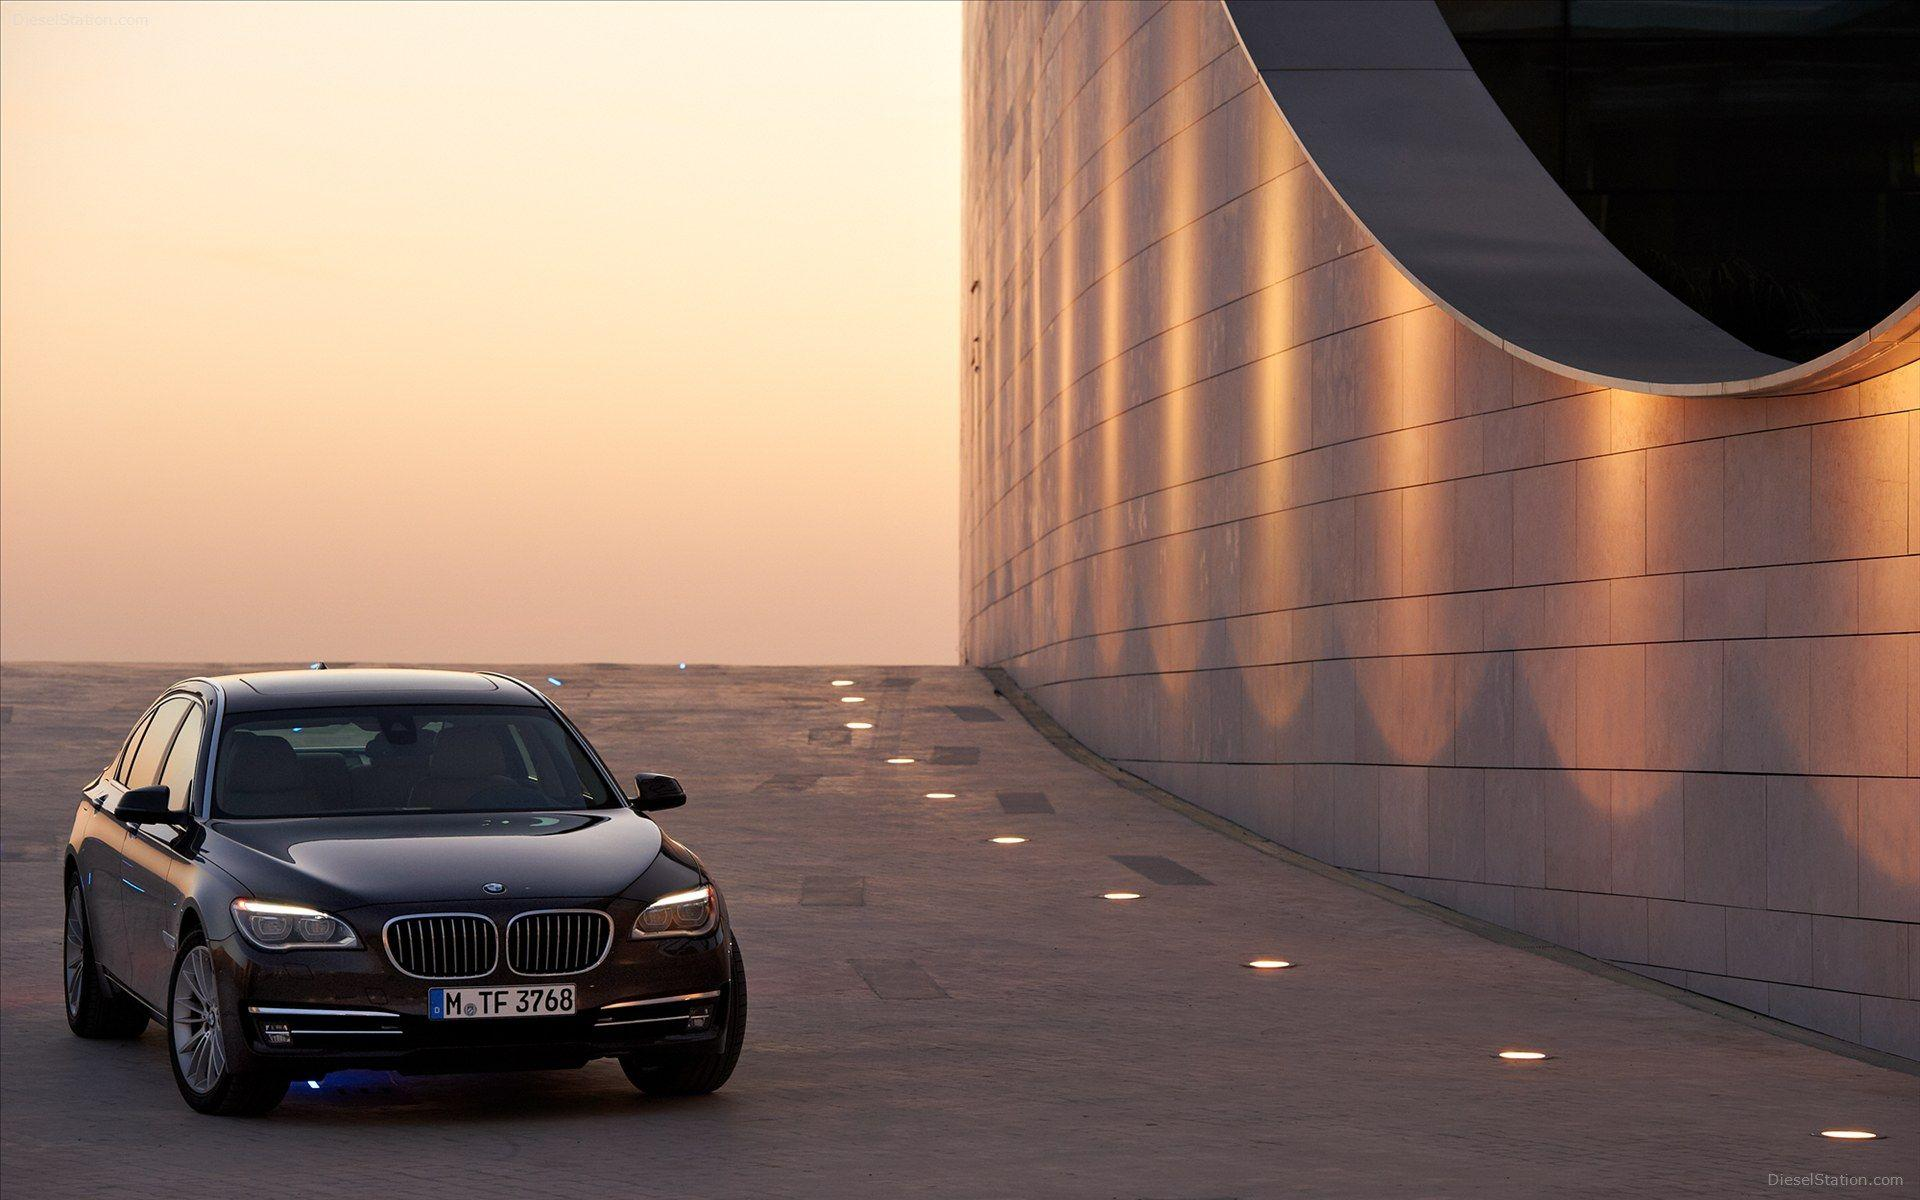 BMW 7 Series 2013 Widescreen Exotic Car Wallpapers of 46 : Diesel